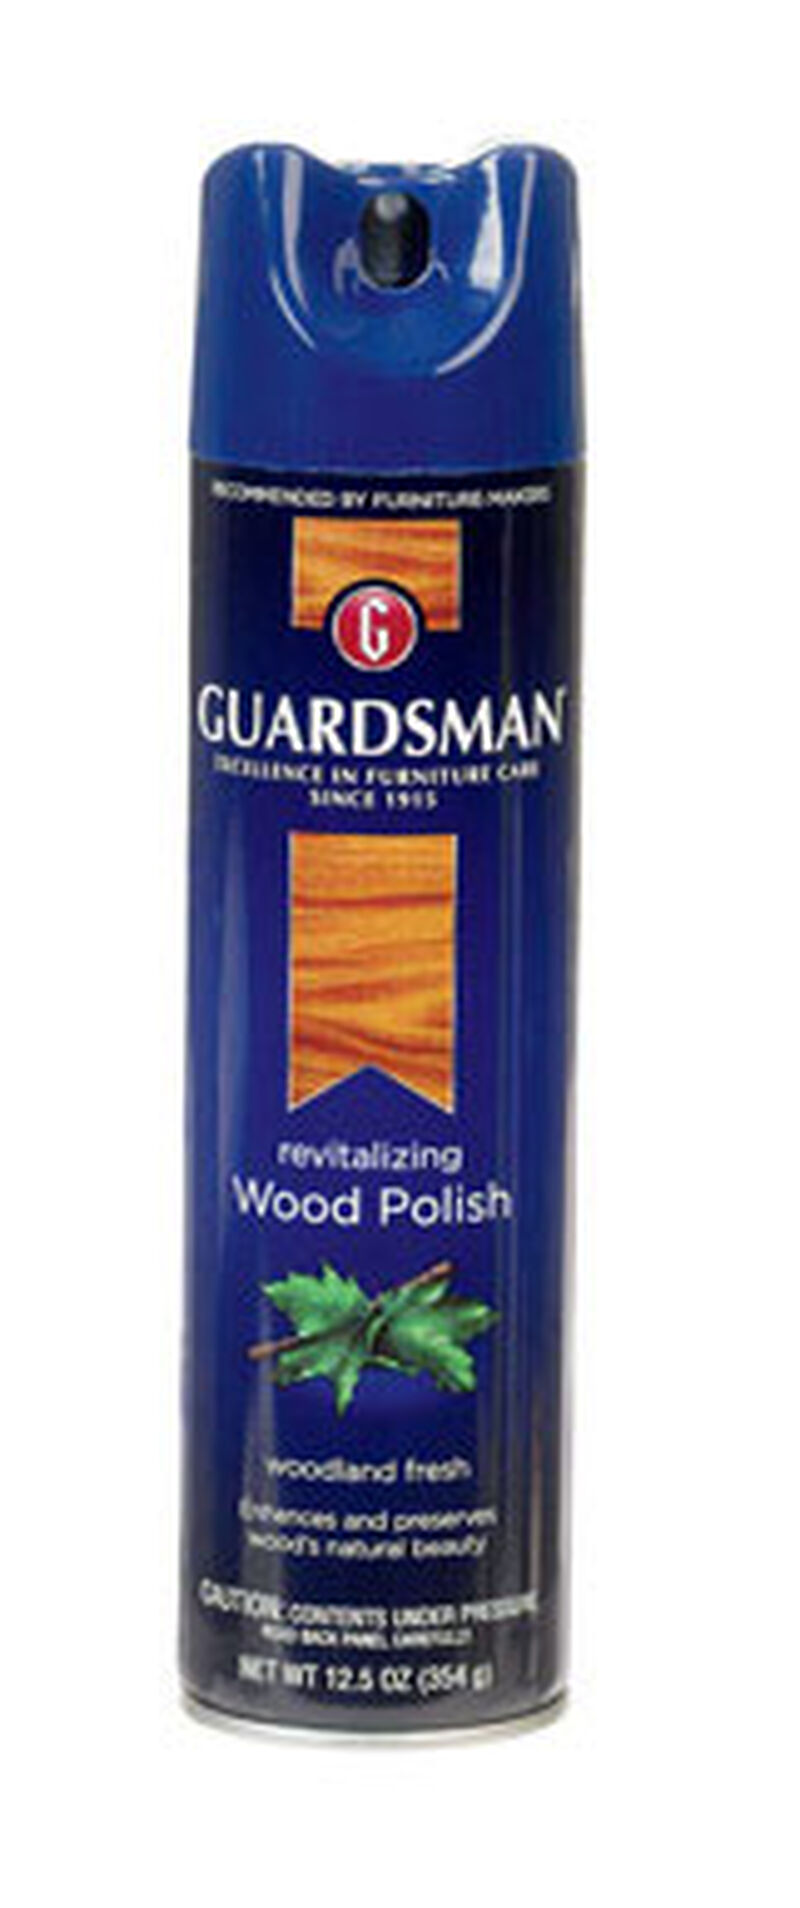 Guardsman Anytime Clean Polish 12 5 Oz Furniture Spray Stine